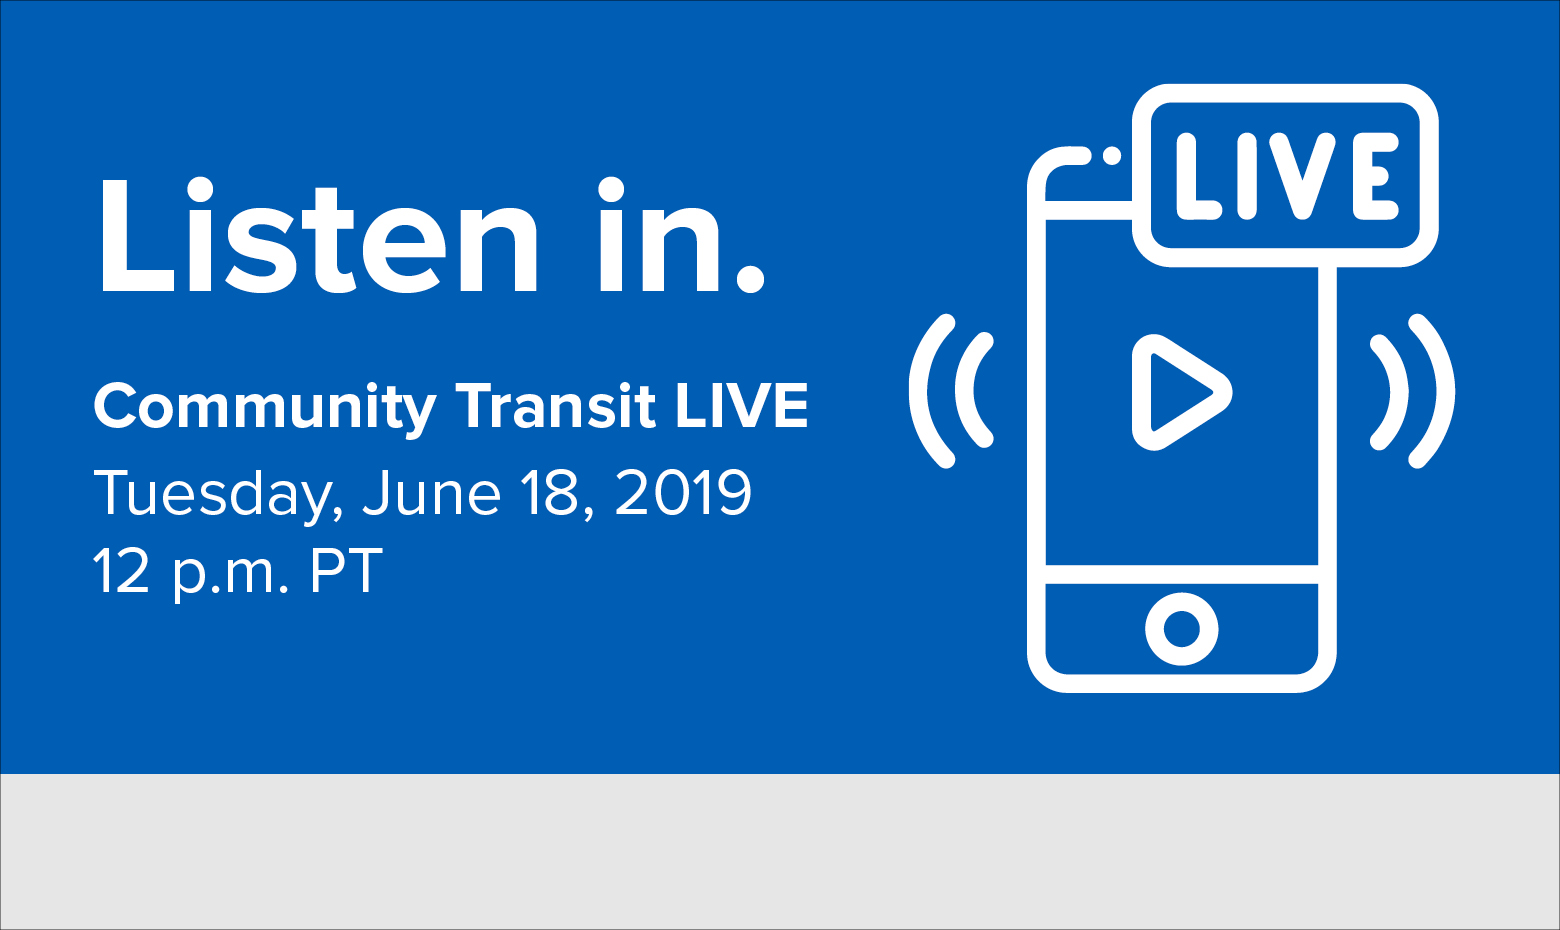 Community Transit LIVE Webcast is Tues., June 18. Join us on Facebook Live.